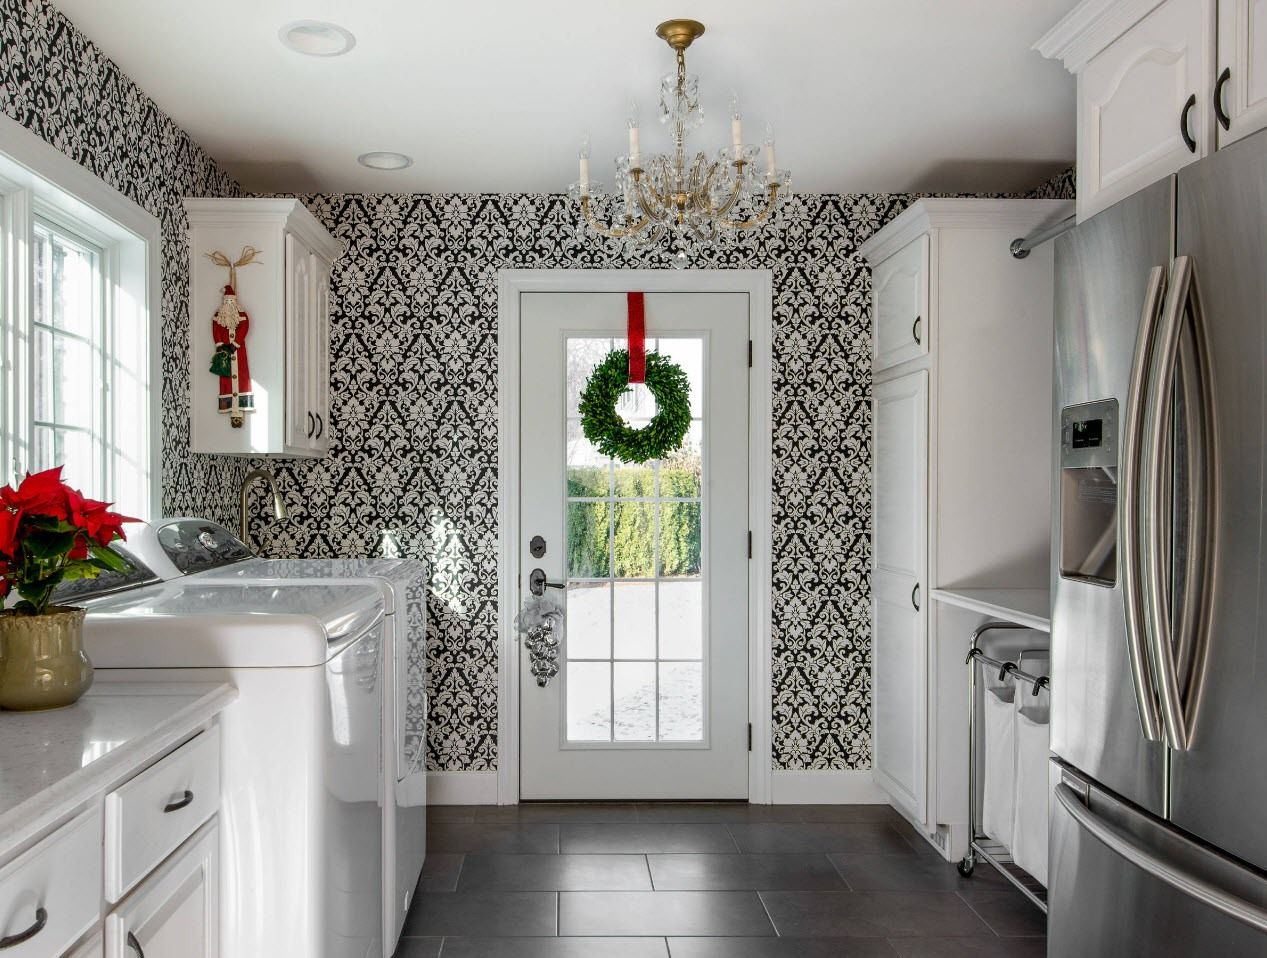 Kitchen with the entrance to the backyard and contrasting wallpaper